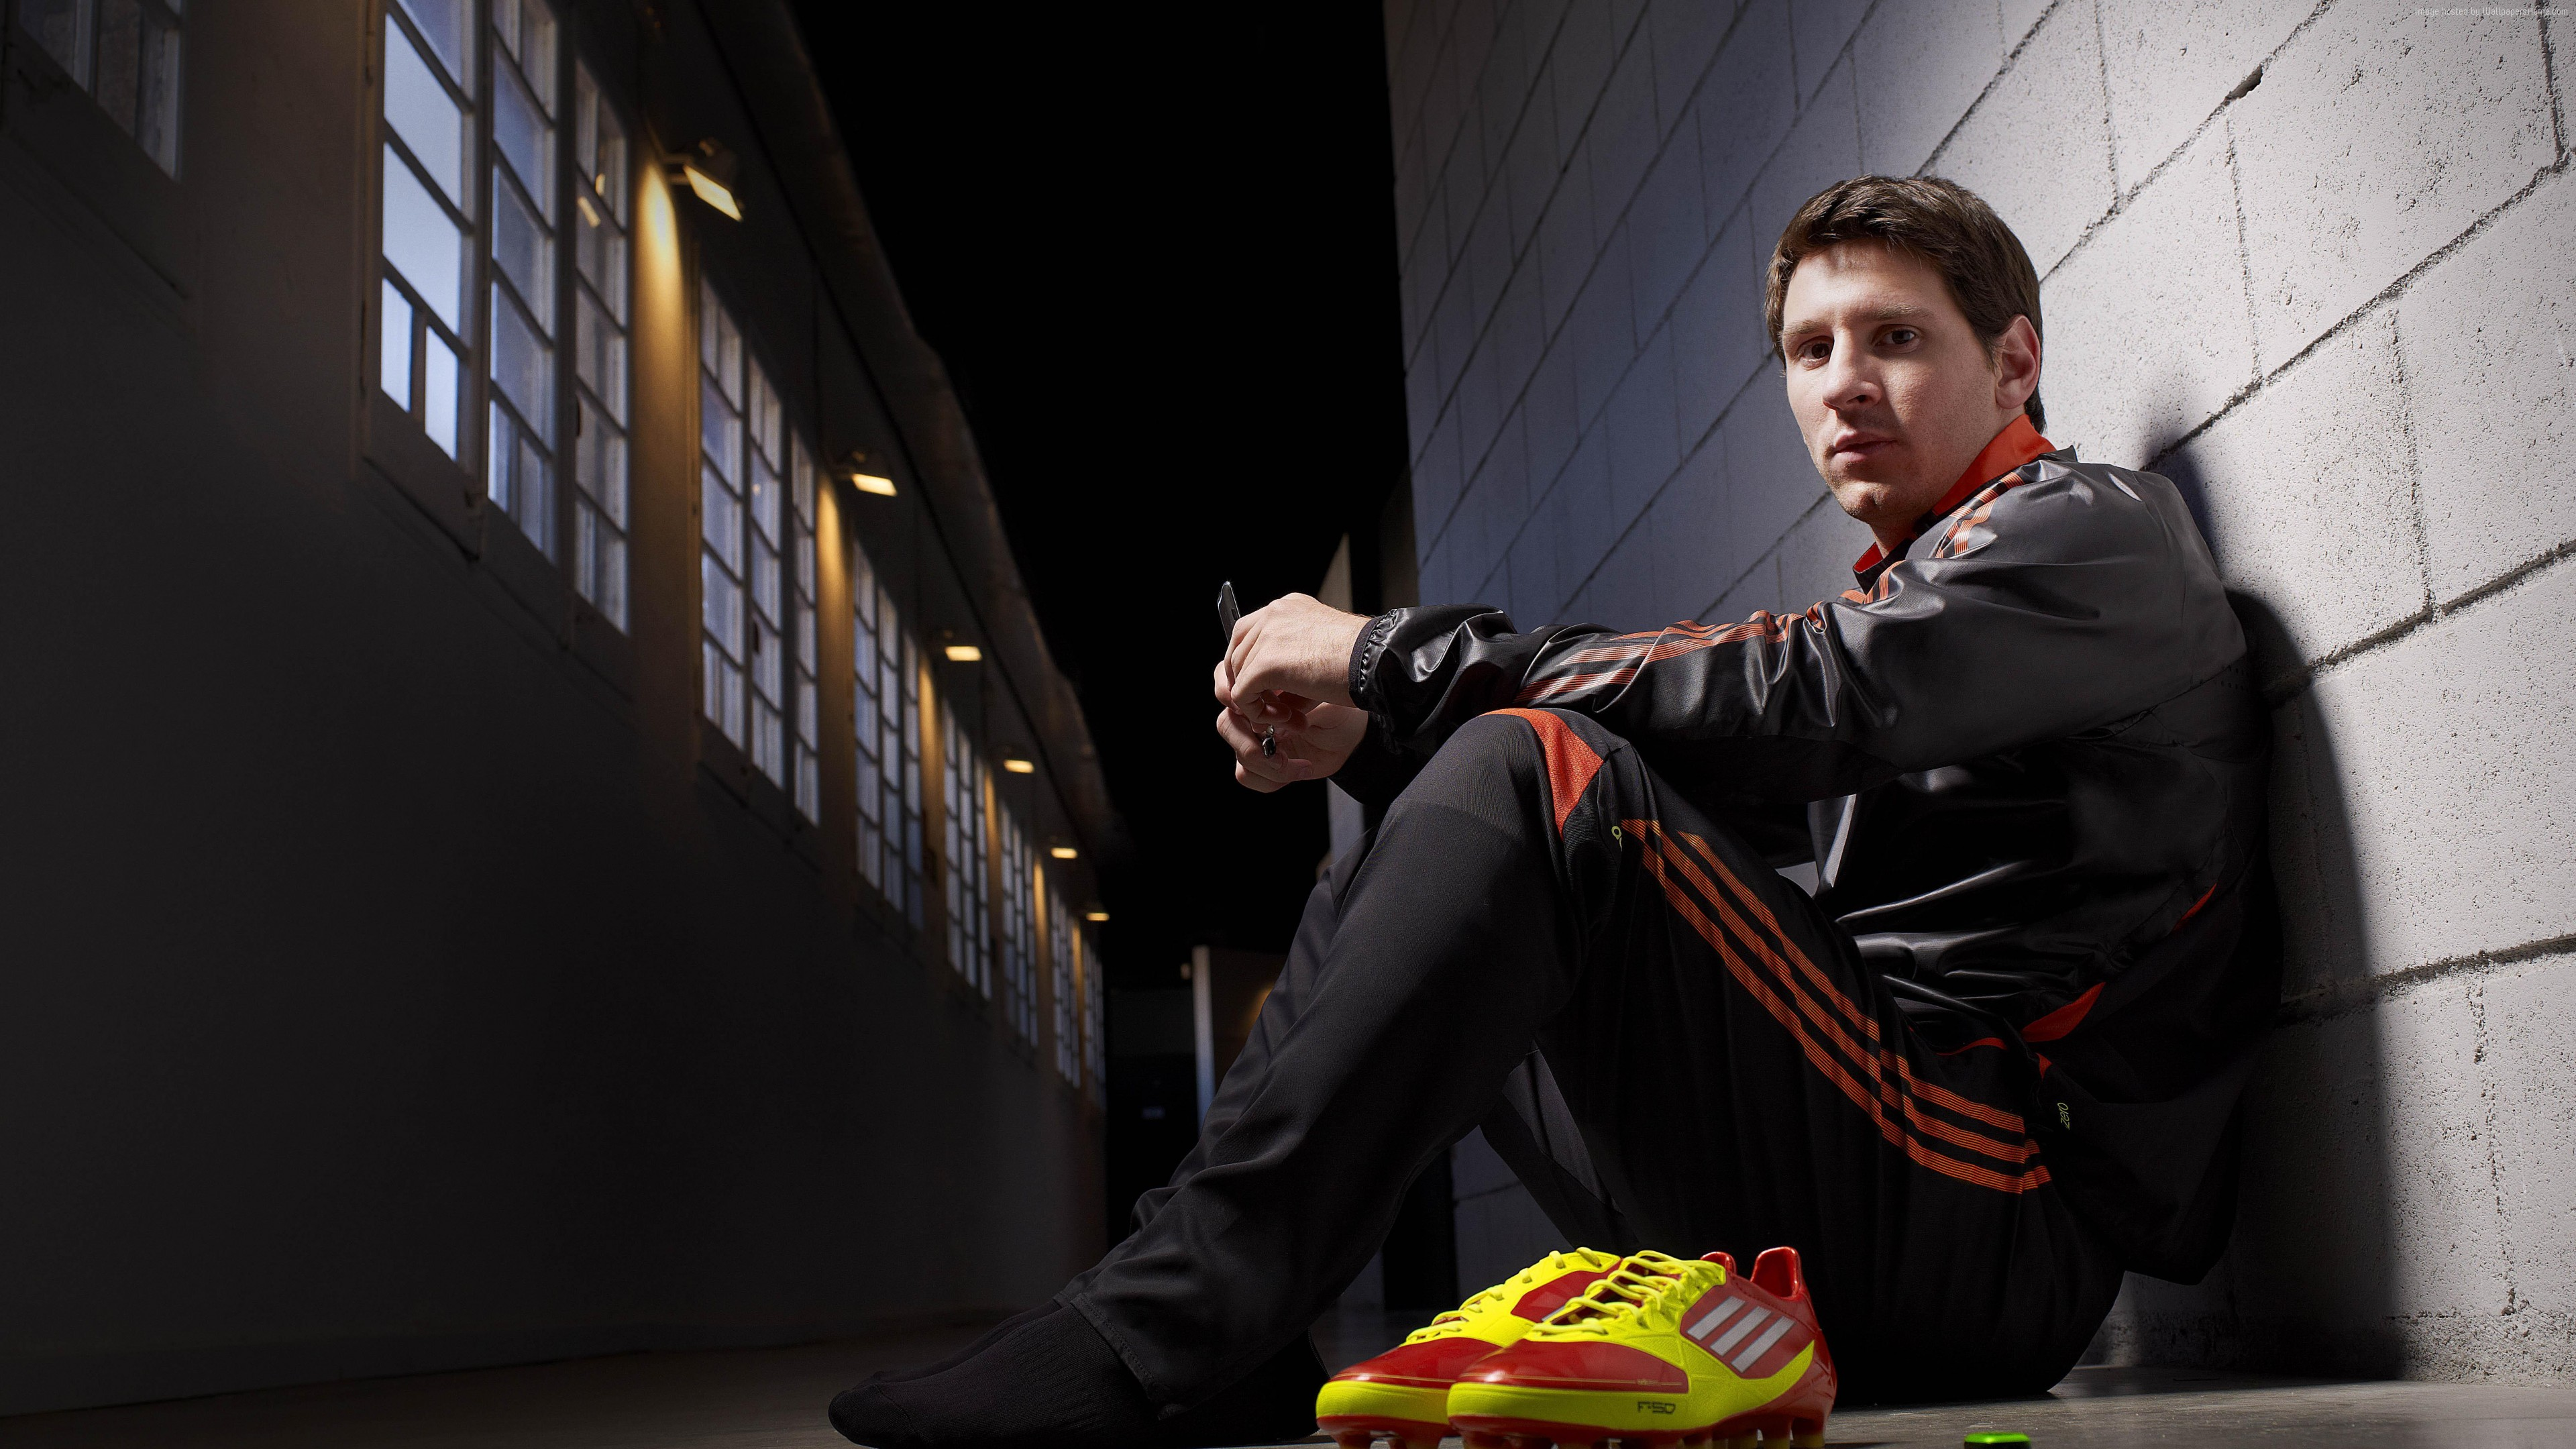 Wallpaper Football, Lionel Messi, soccer, The best players 2015, Barcelona, footballer, Forward, Lionel Andres Messi Cuccittini, Sport